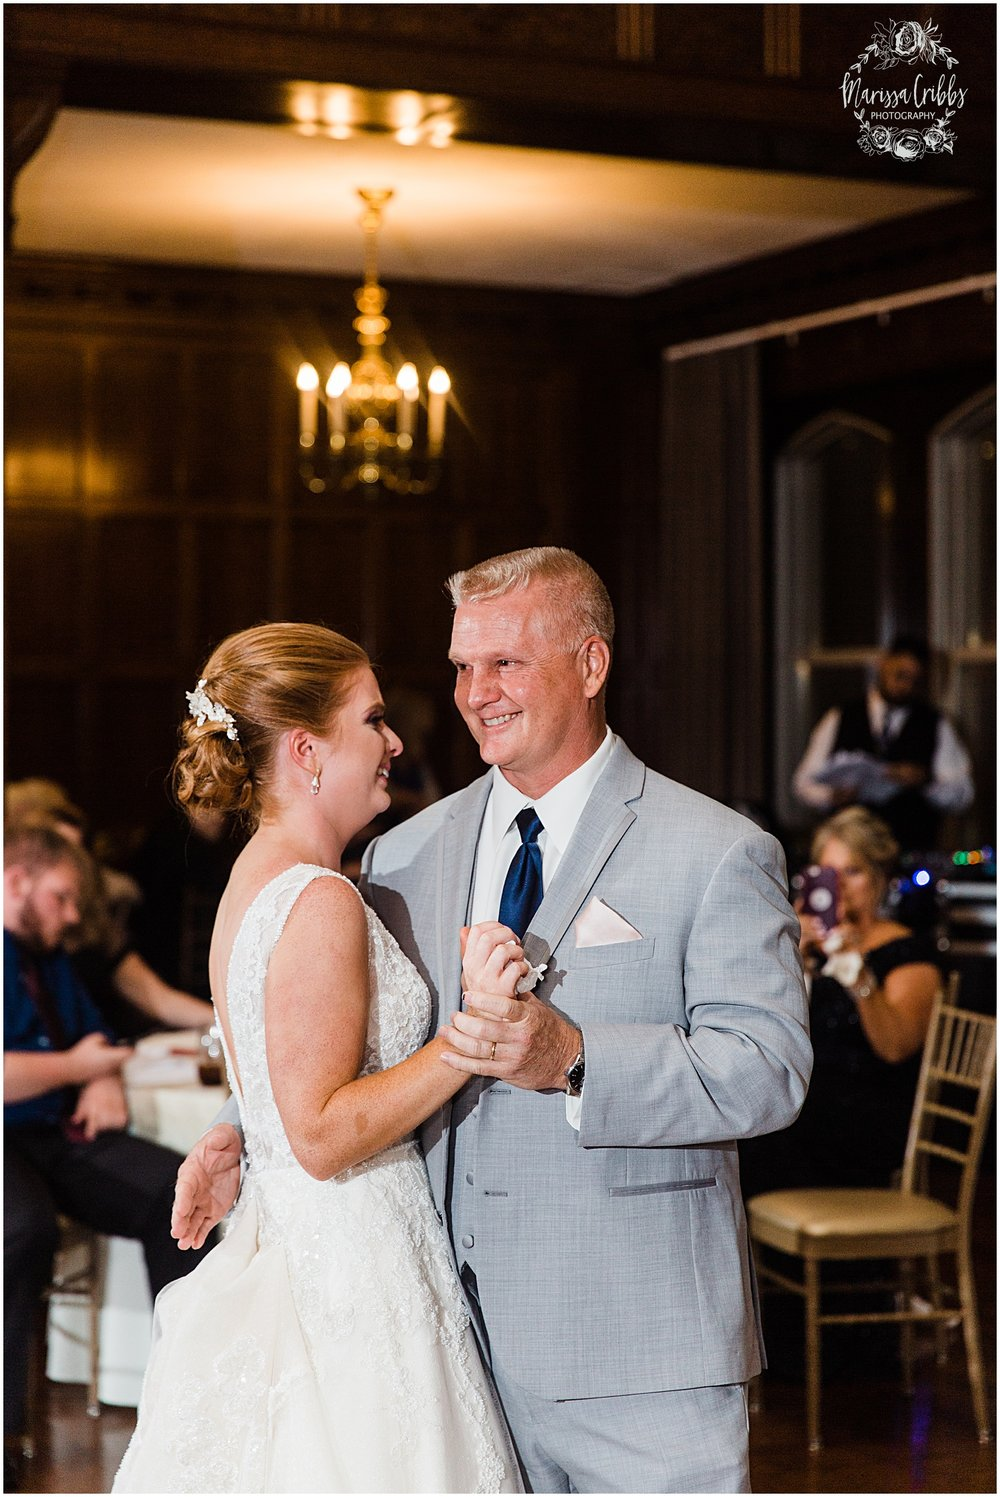 BRASS ON BALTIMORE WEDDING | MARISSA CRIBBS PHOTOGRAPHY_3986.jpg